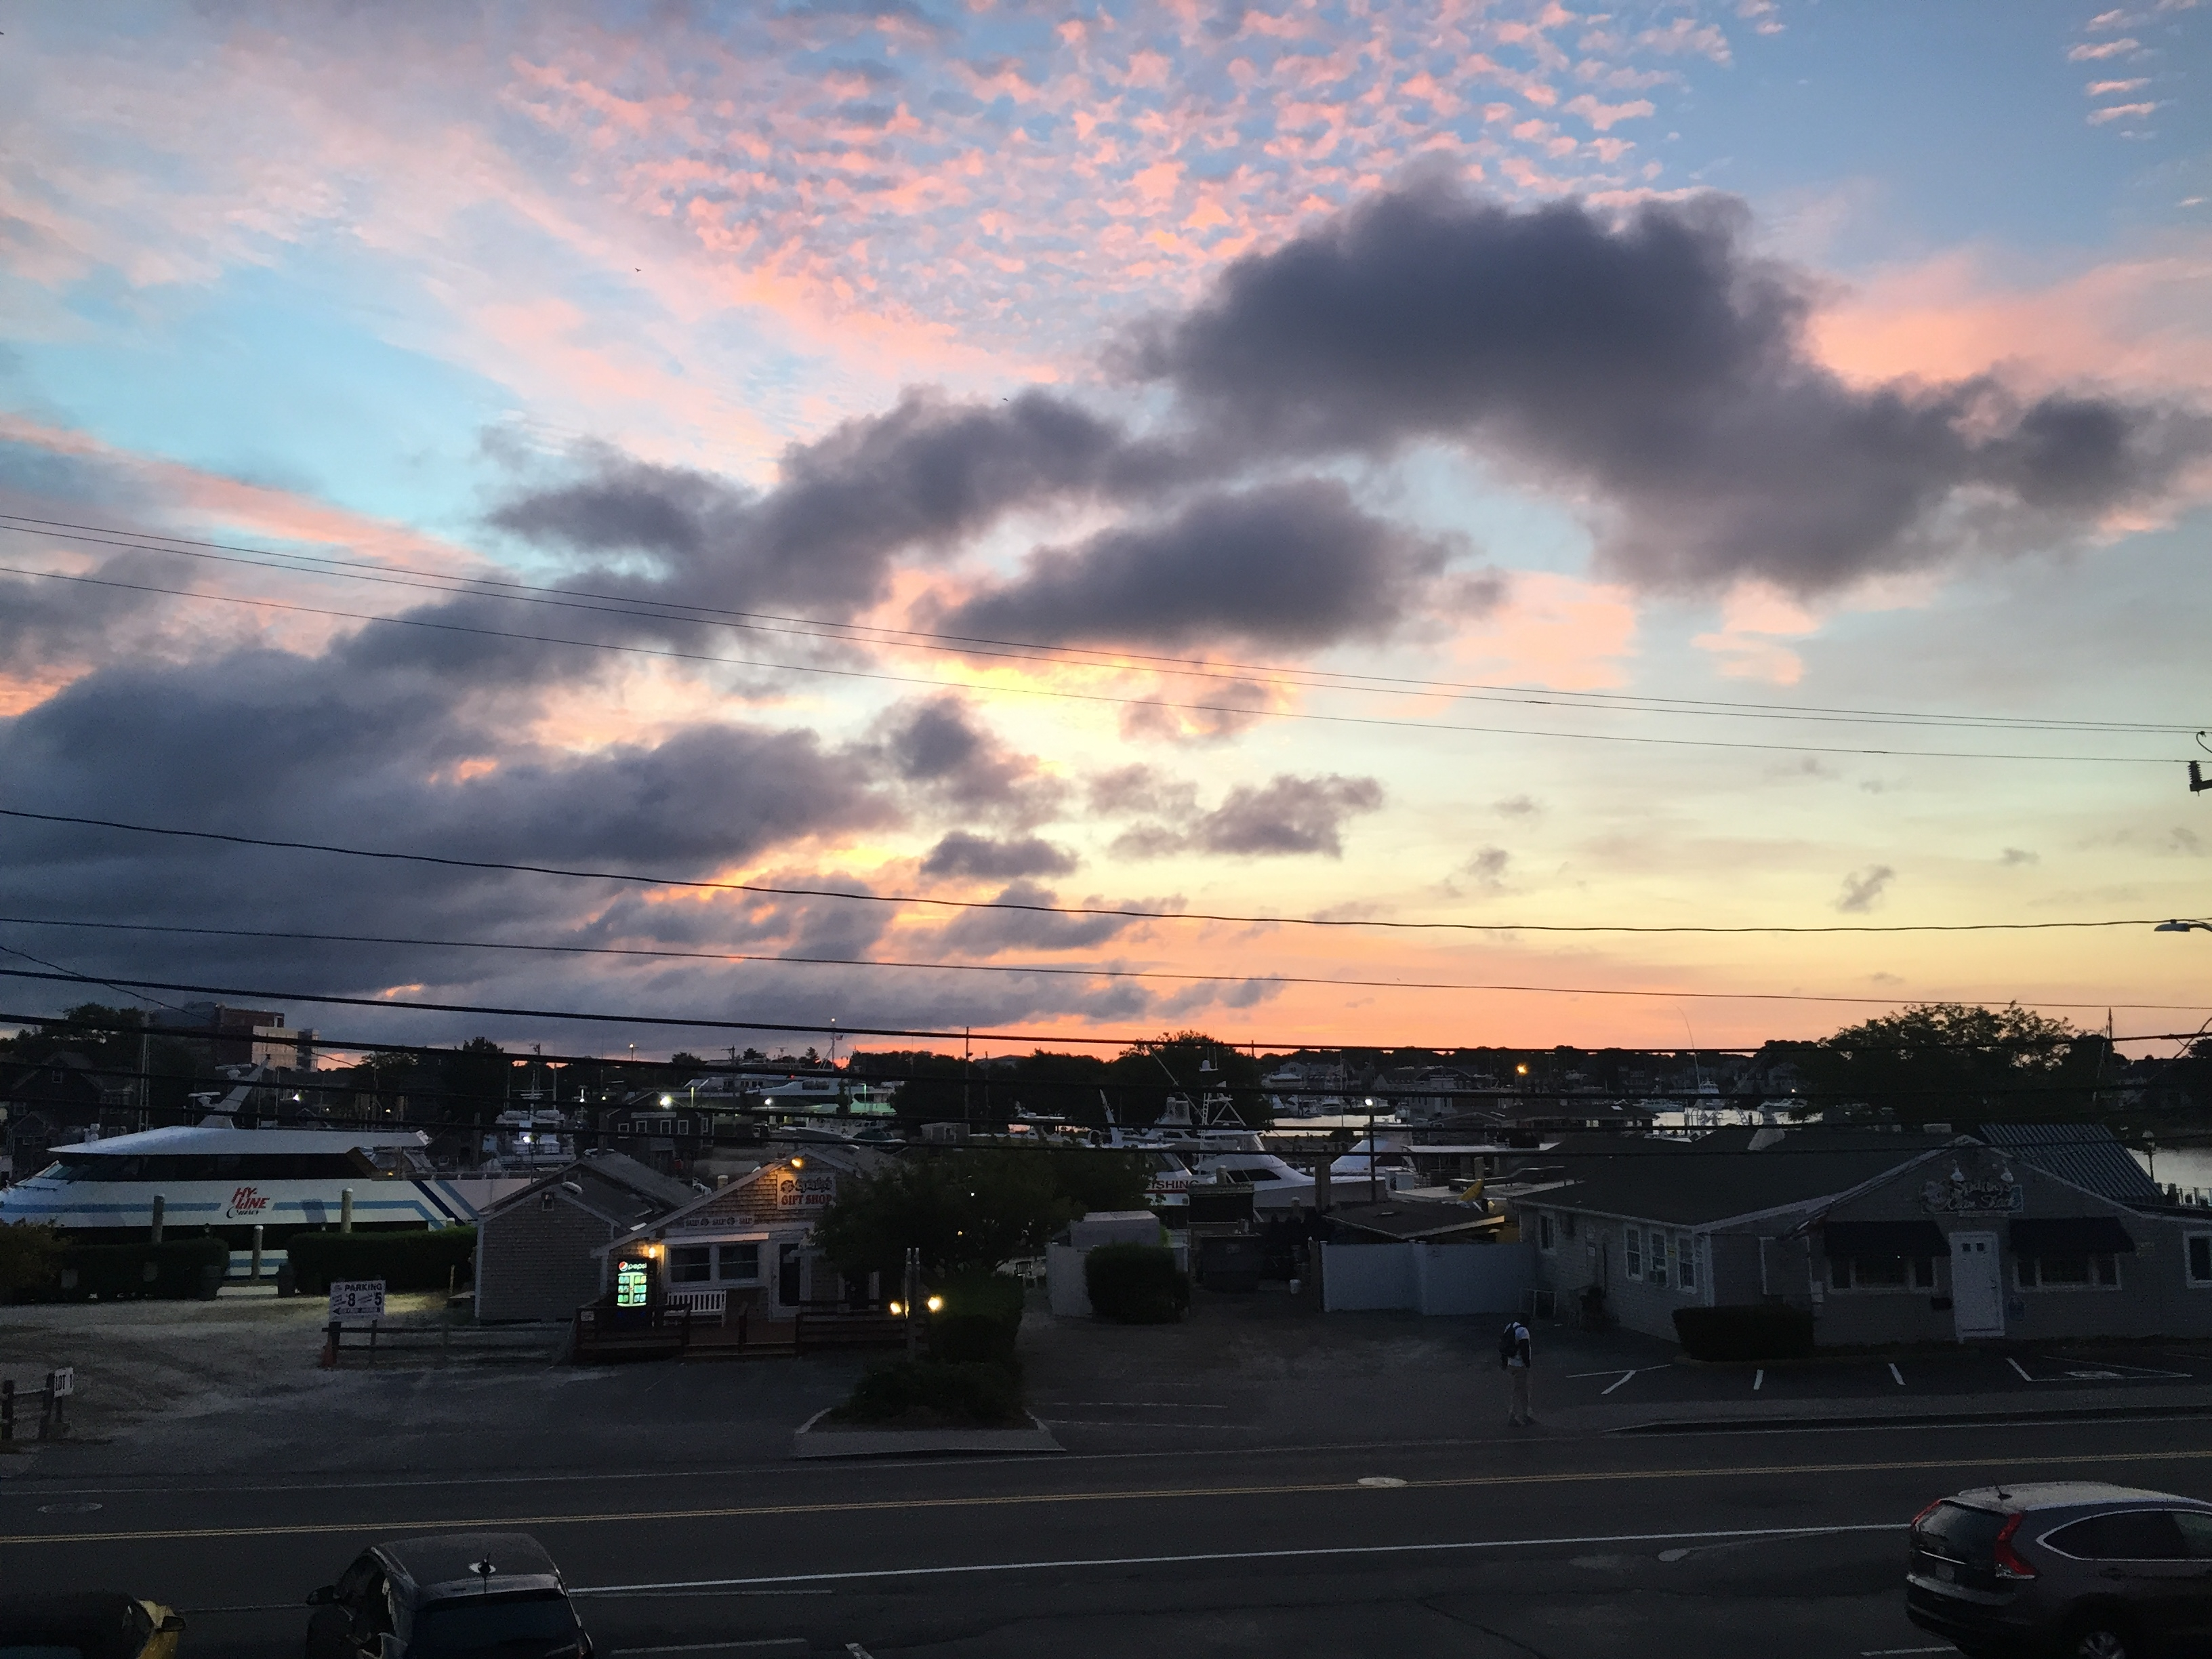 The view of Hyannis Harbor from the Hyannis Holiday Motel. Photo credit: M. Ciavardini